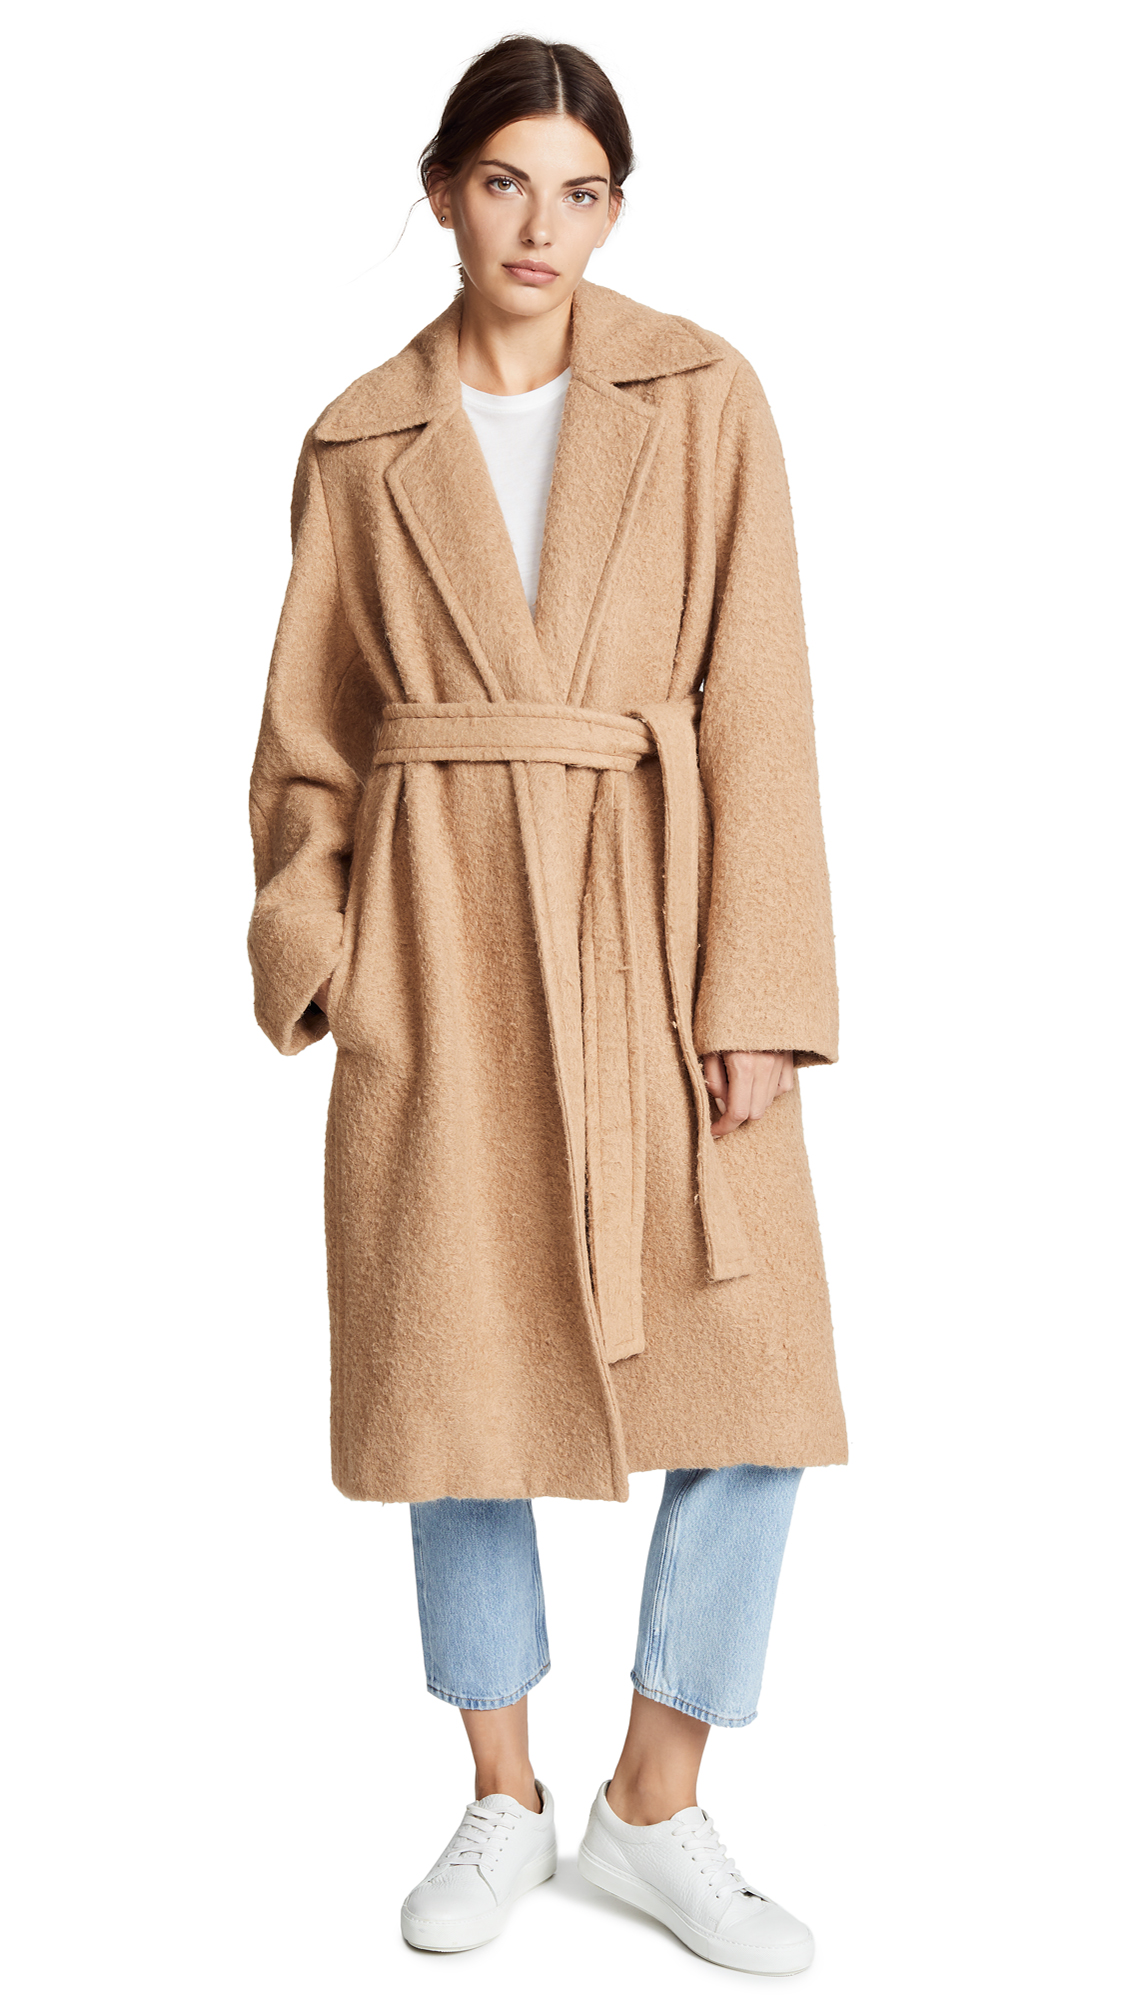 Helmut Lang Napped Wool Coat In Camel